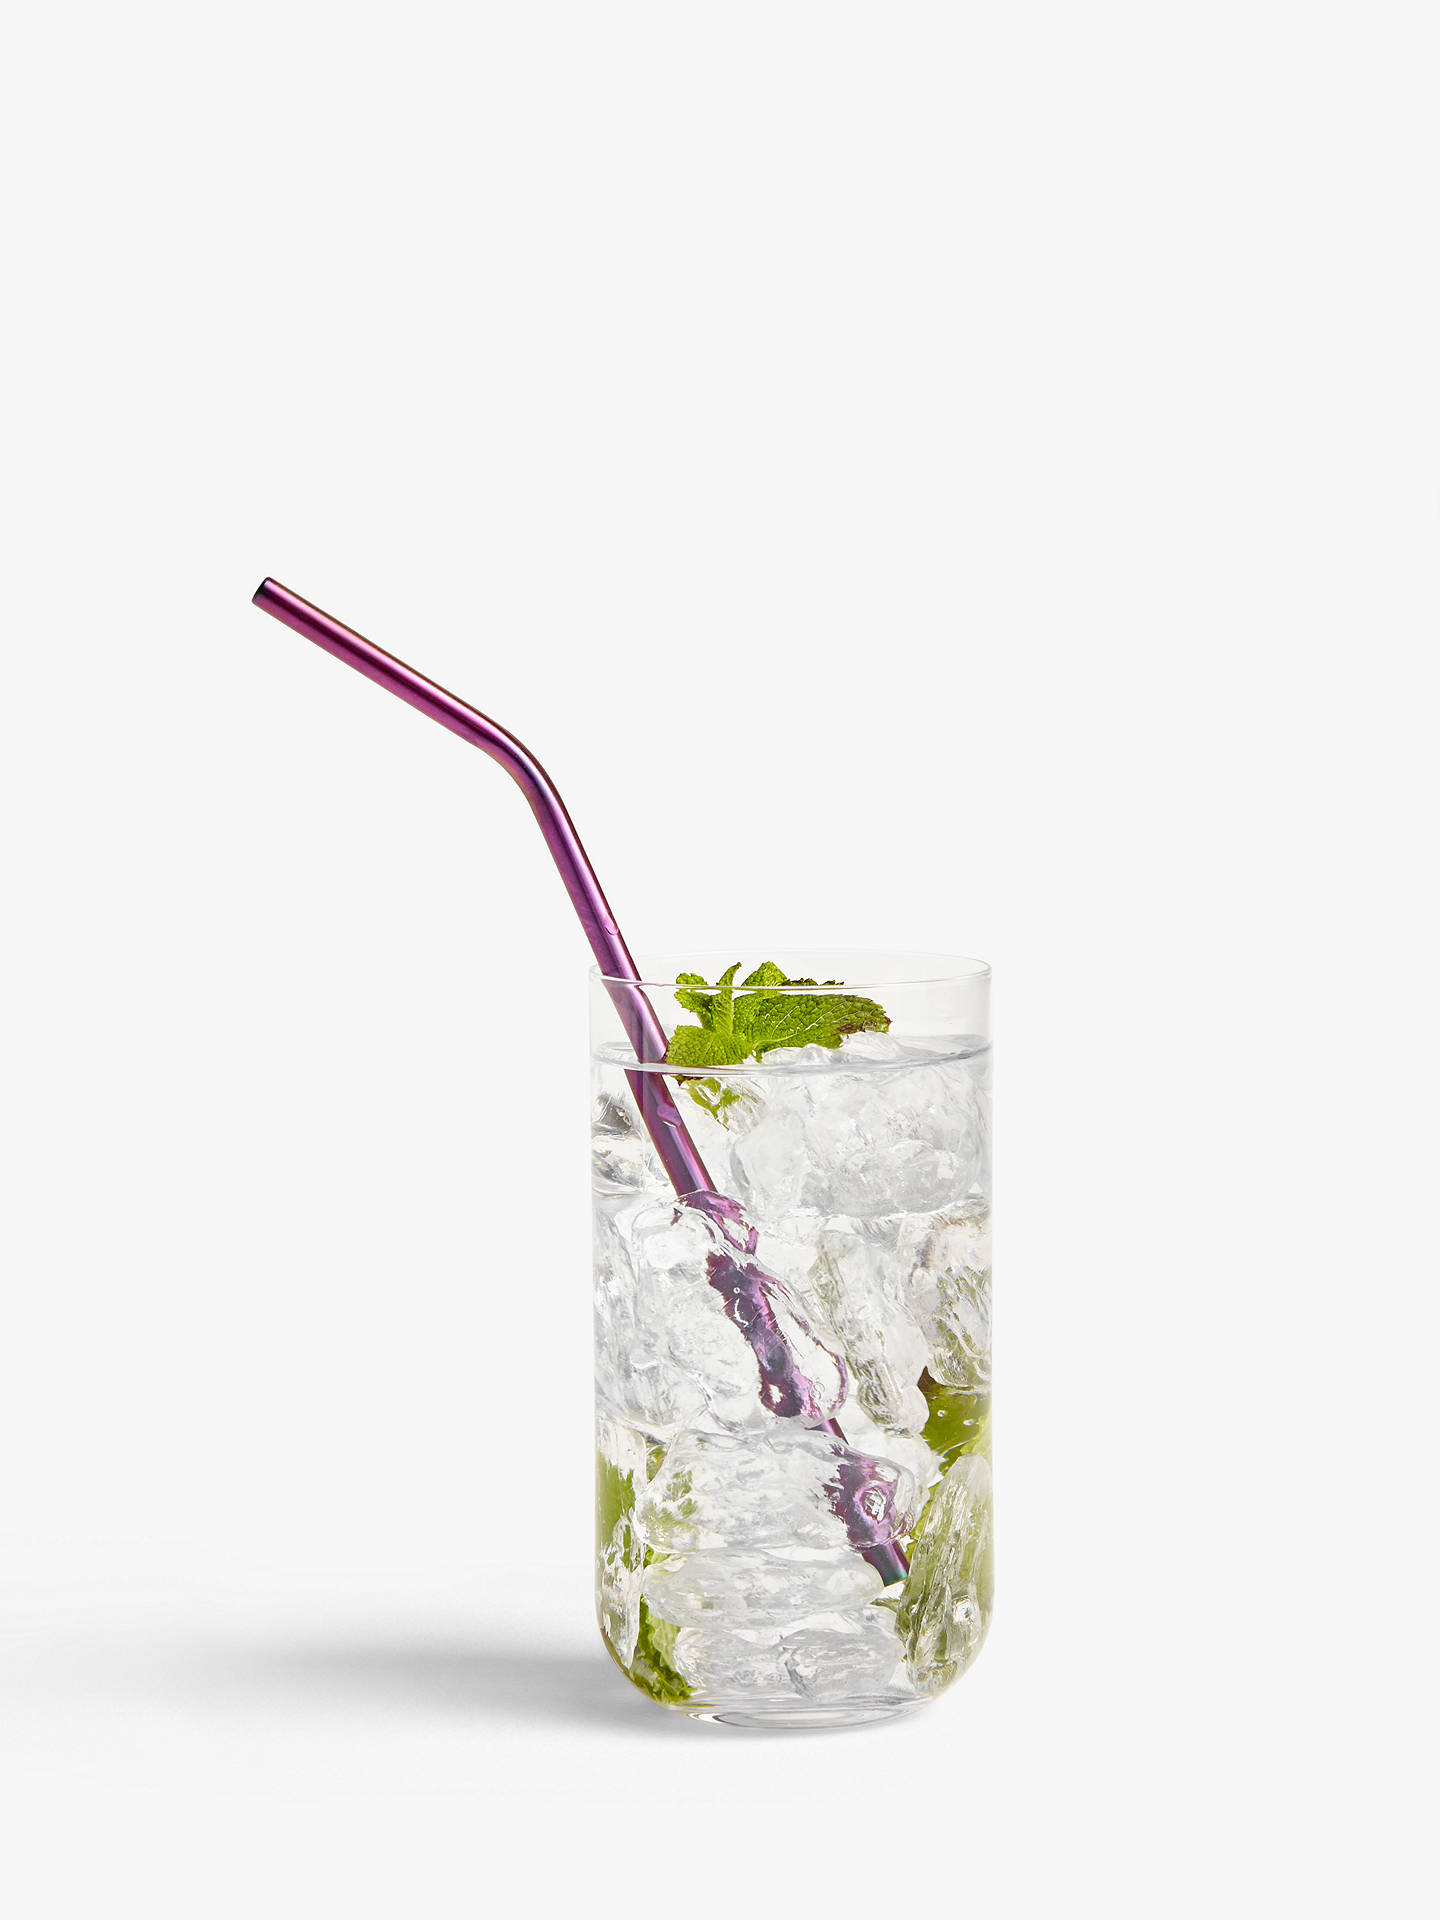 Buy John Lewis & Partners Iridescent Metal Straws, Pack of 3 Online at johnlewis.com